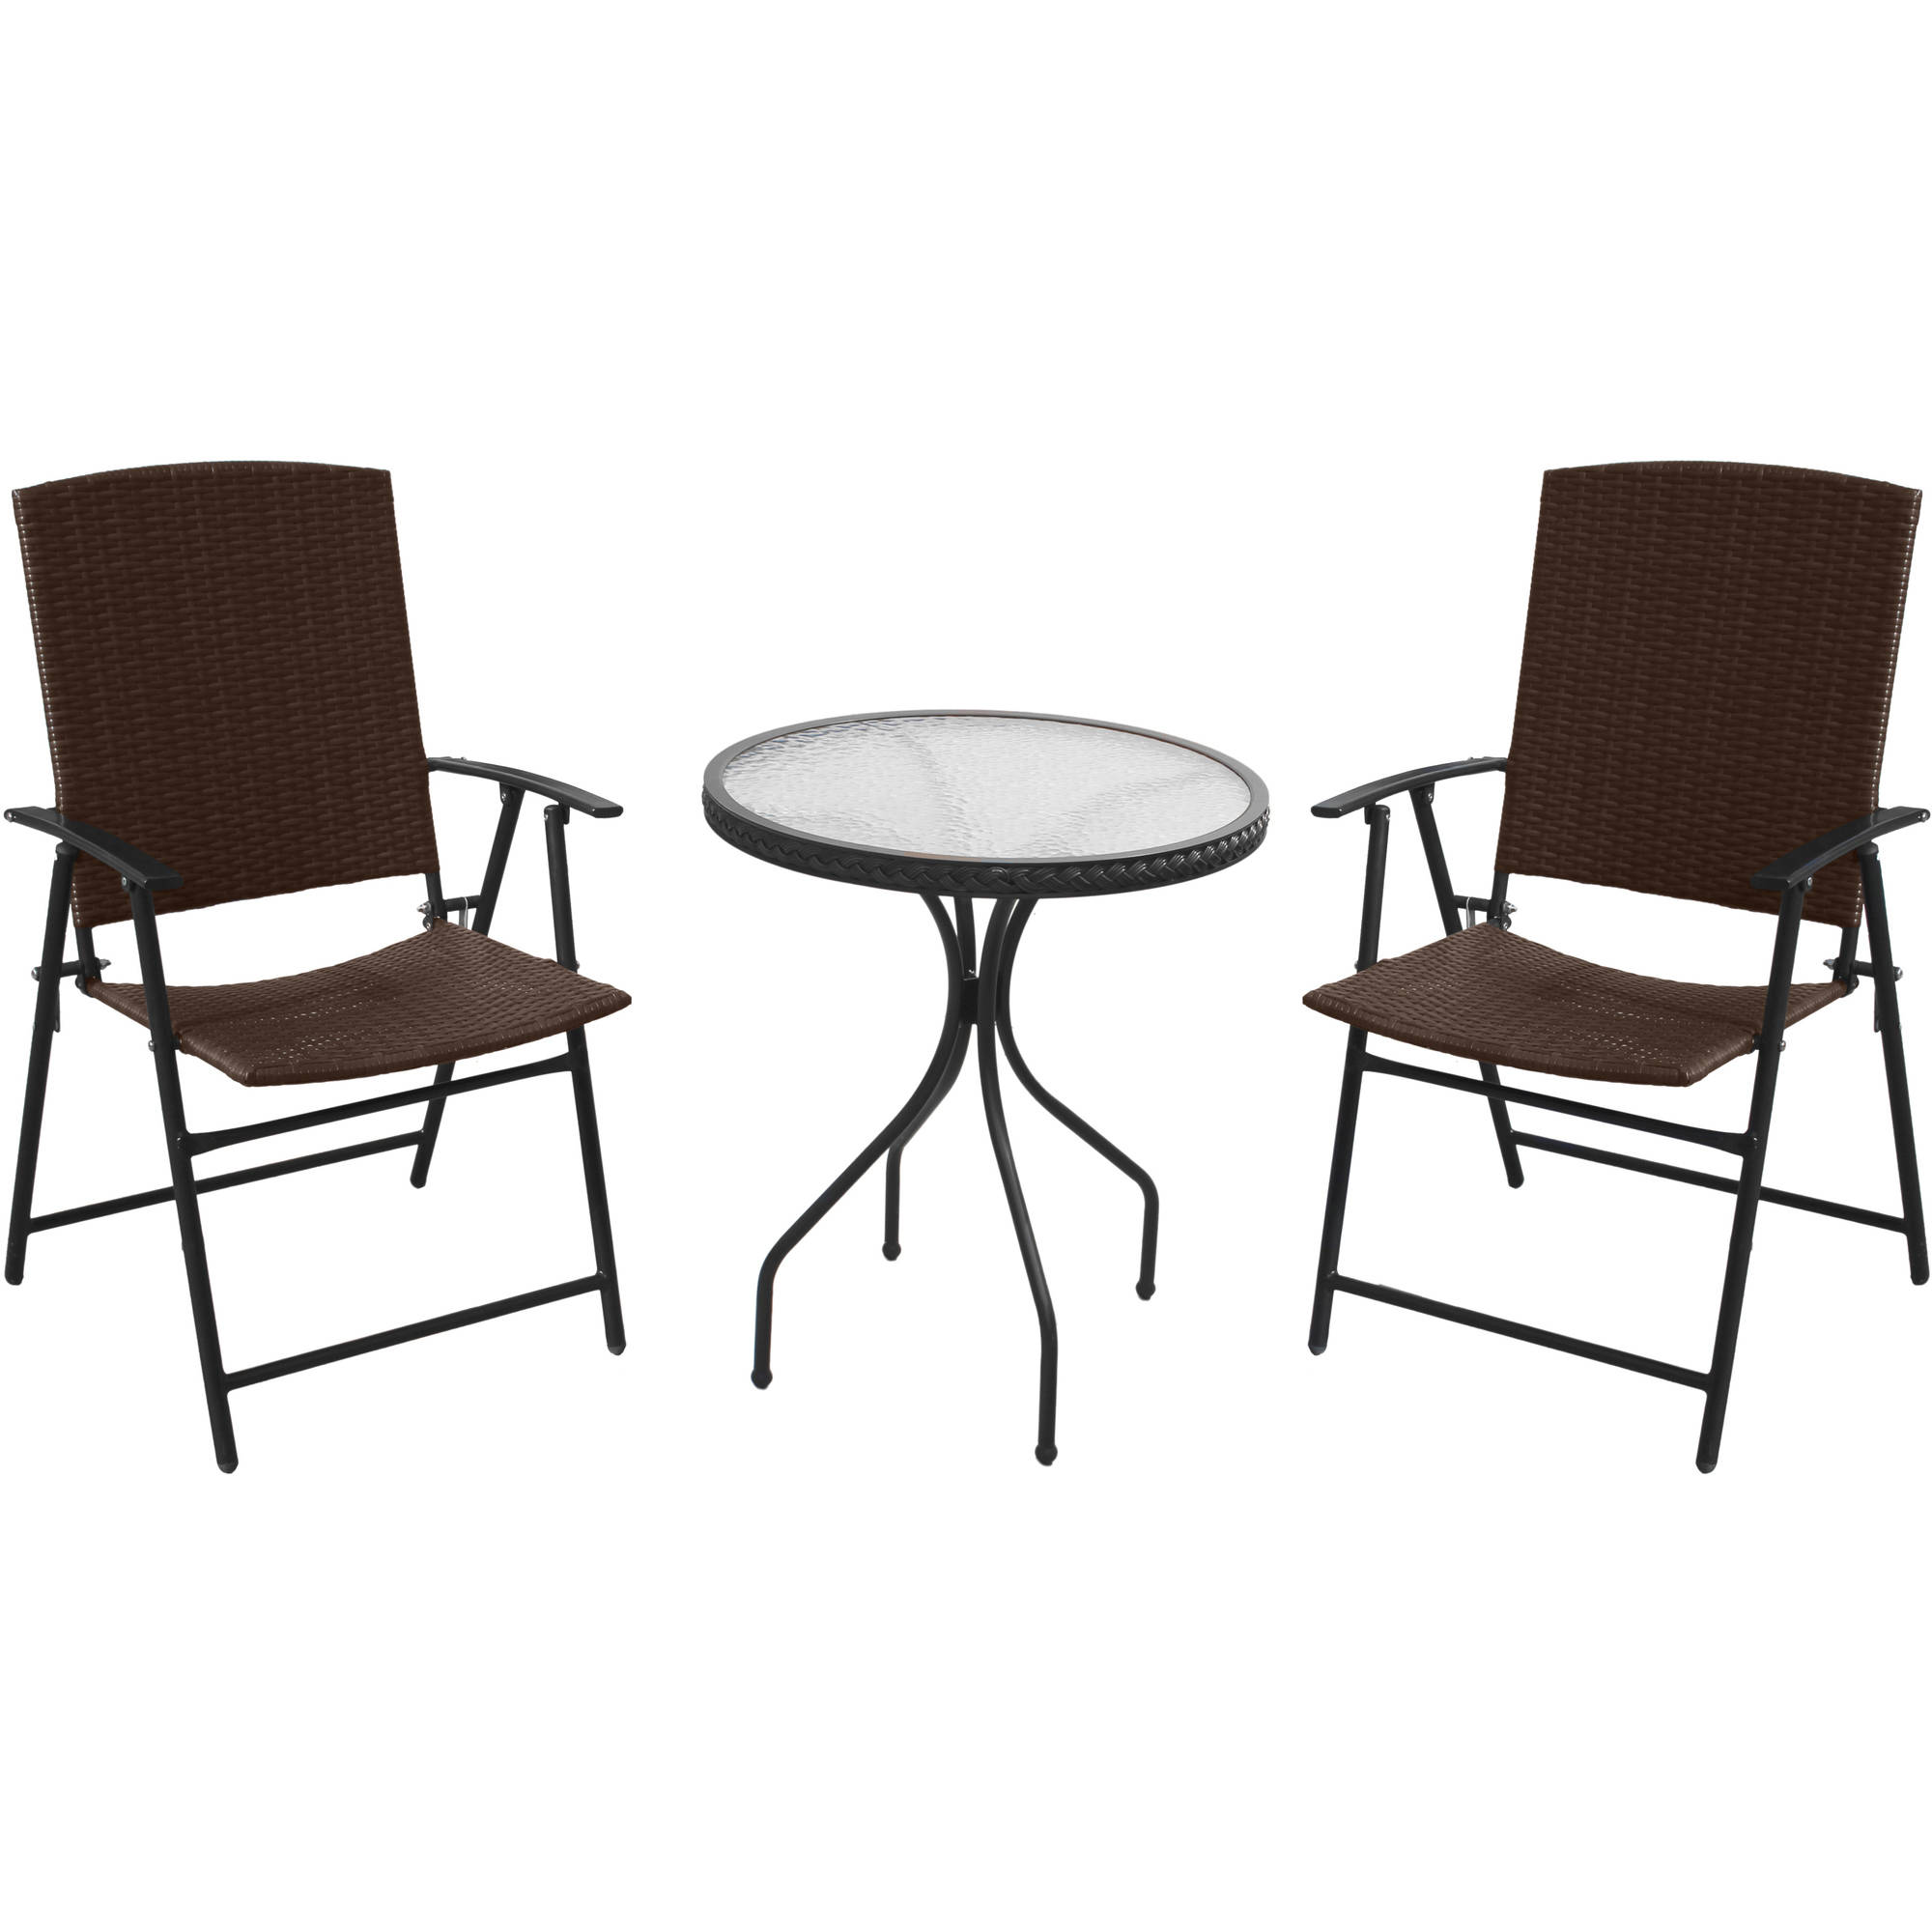 Hiland Bar Three-Piece Patio Set, Mocha Wicker